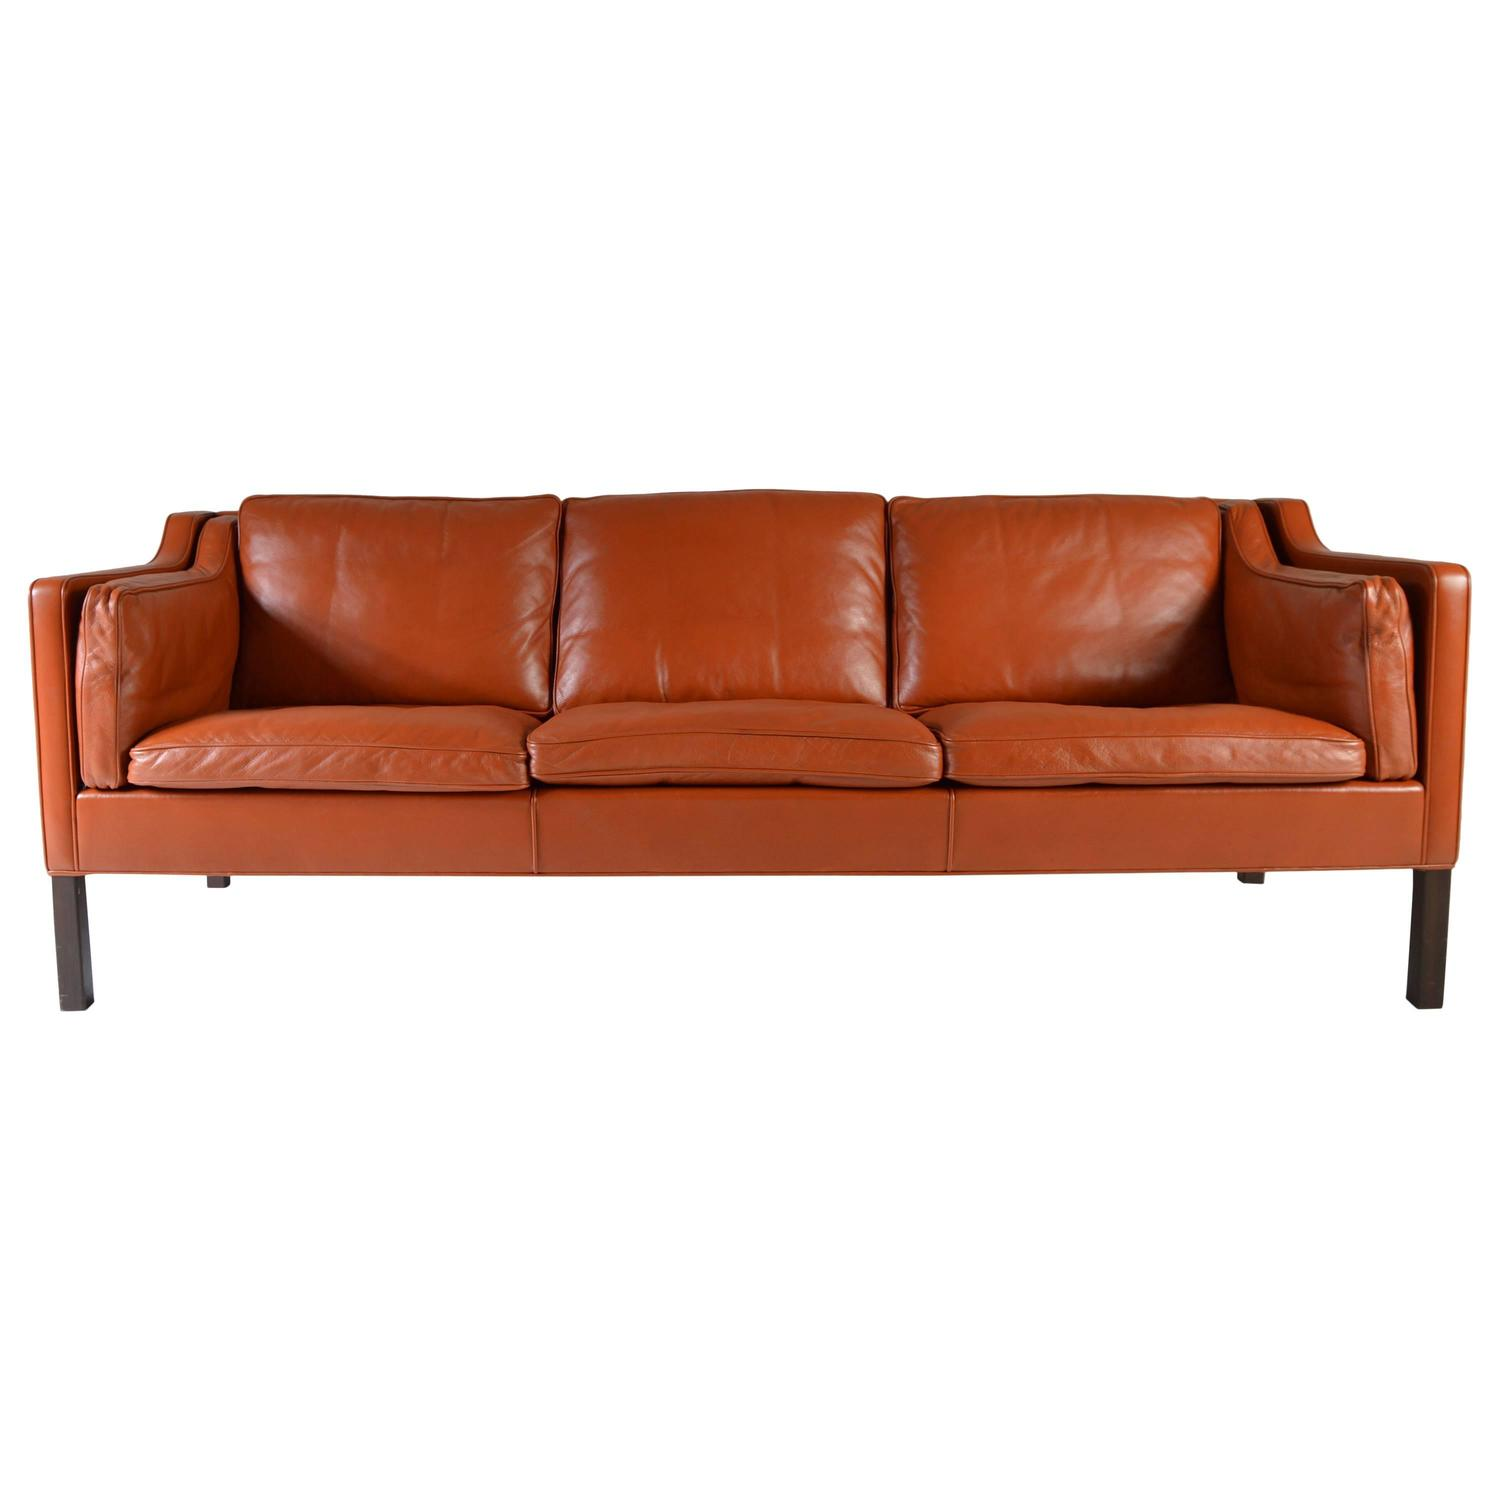 cognac leather sofa by b rge mogensen for fredericia. Black Bedroom Furniture Sets. Home Design Ideas